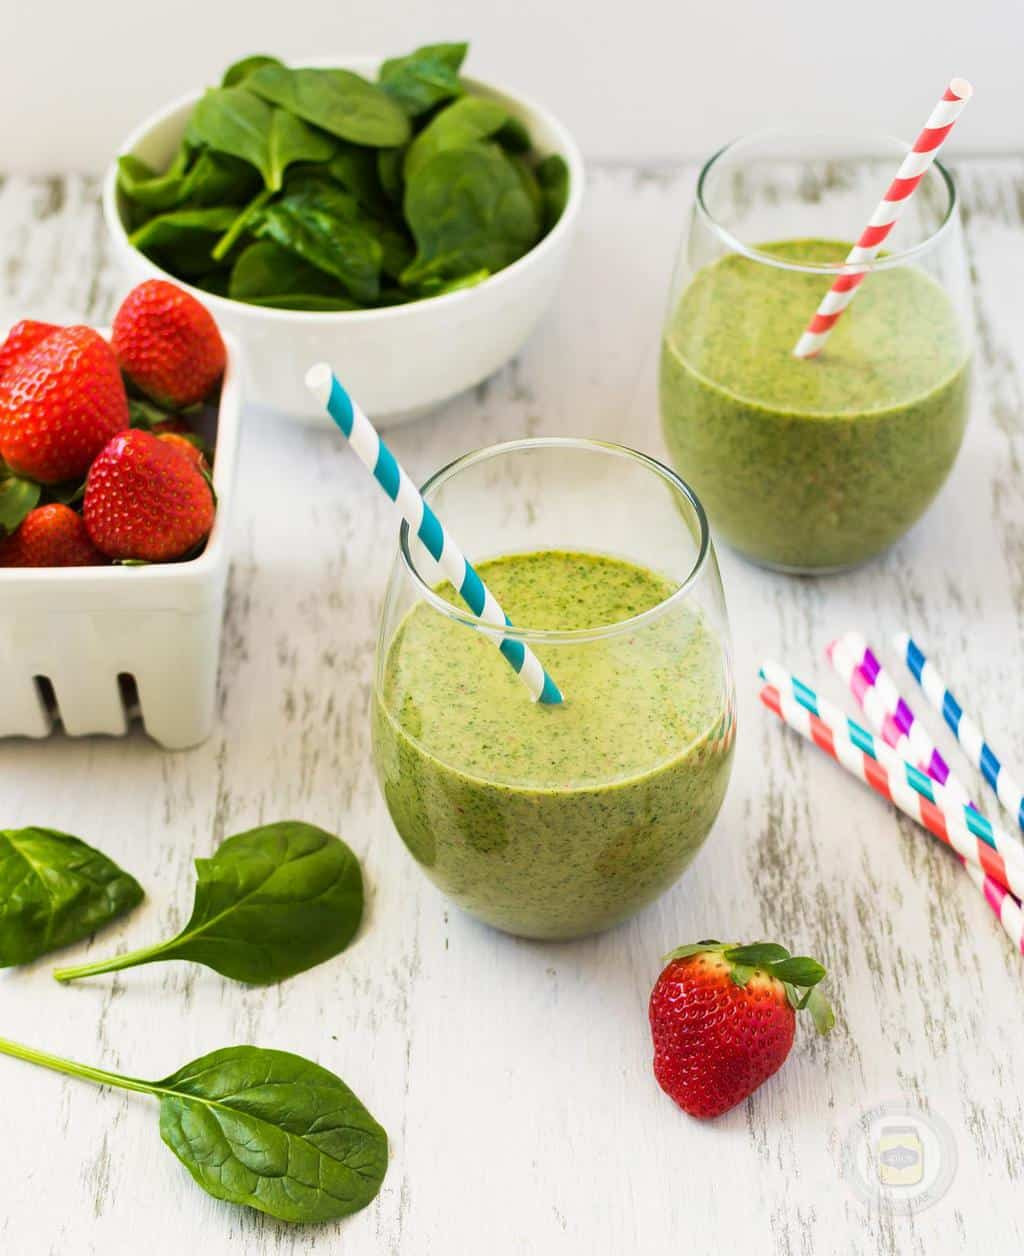 Kale Smoothie Recipes  15 Kale Smoothie Recipes That Actually Taste Great